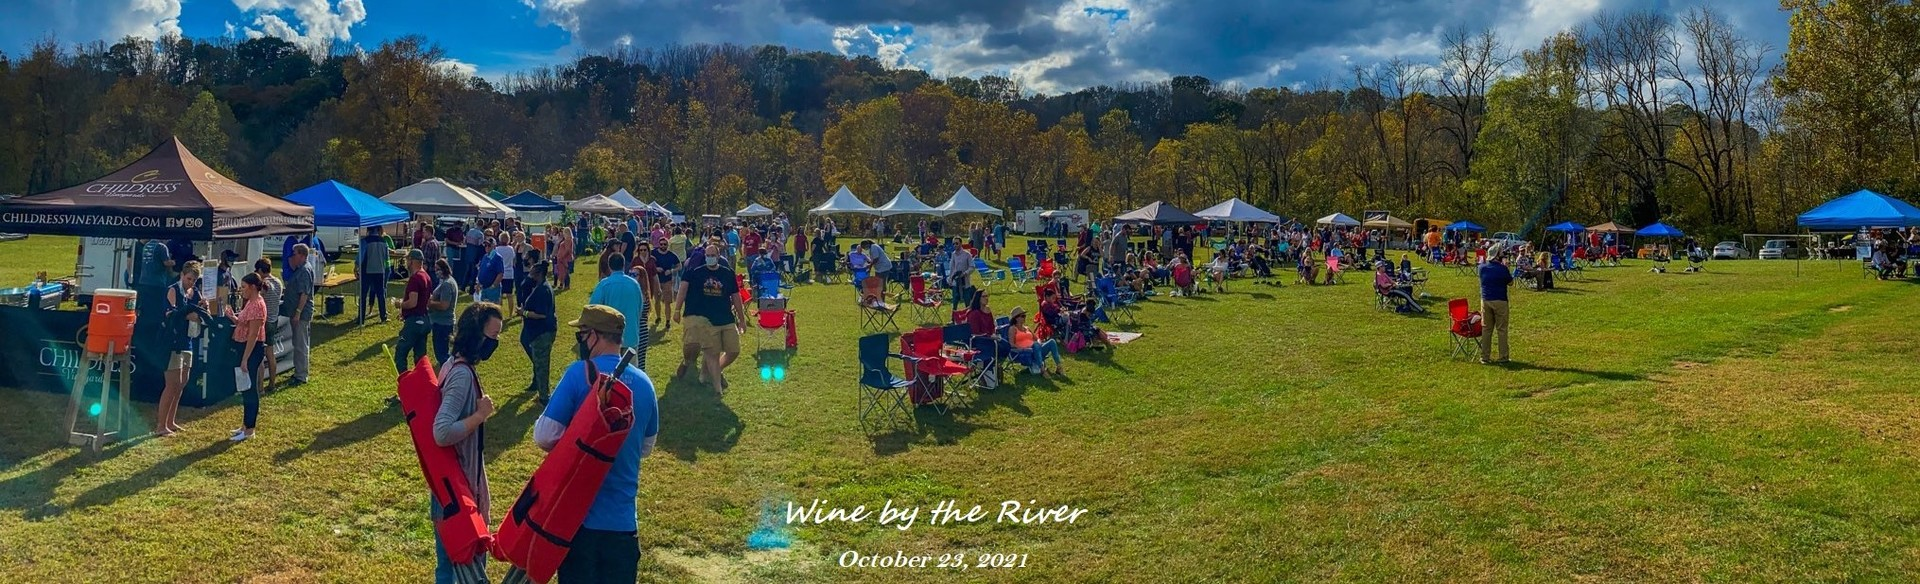 Wine by the River Festival